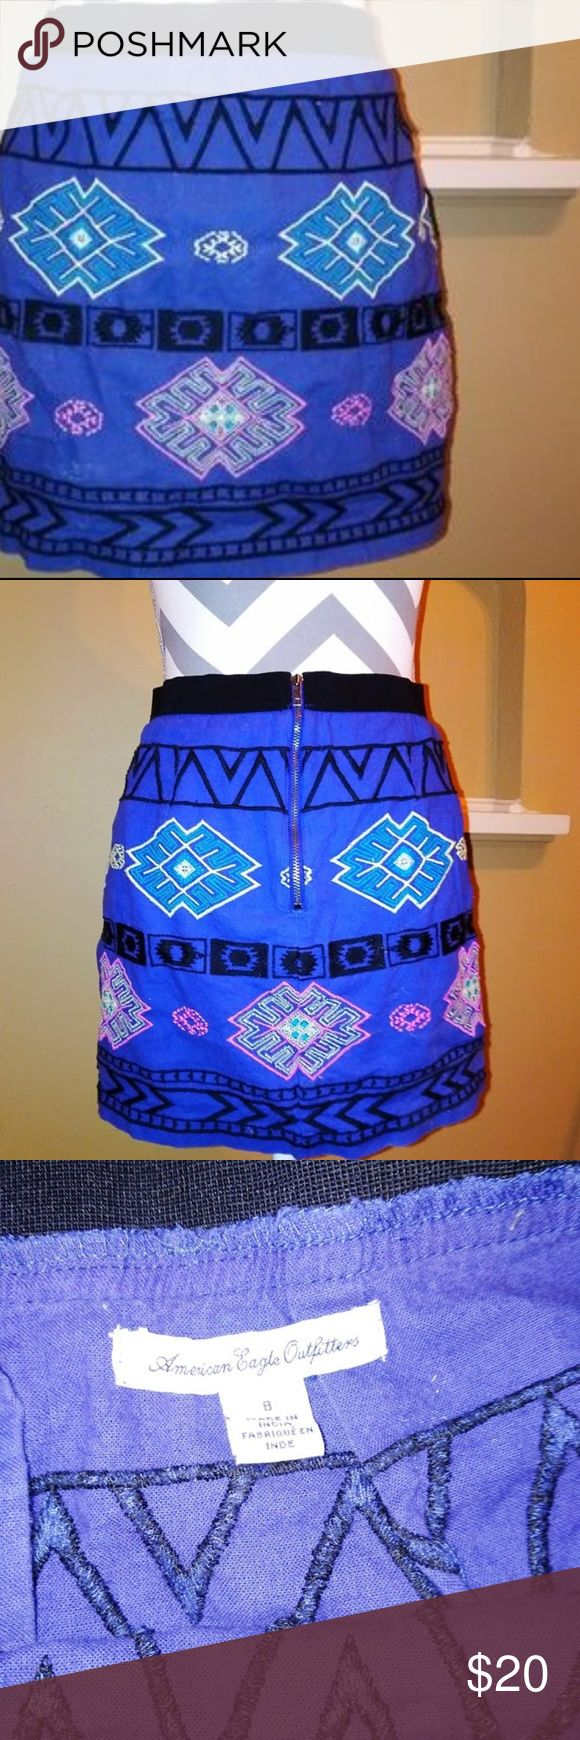 """AEO Aztec Tribal Embroidered Skirt NWOT AEO Aztec Tribal Embroidered Skirt, size 8.  Gorgeous Purple Colored Skirt with Tribal Pattern Embroidered upon it.  Skirt is 14.5"""" long, has 14"""" waist, measured laid flat, with 6"""" bronze colored zip located at center back of skirt.  No imperfections. American Eagle Outfitters Skirts A-Line or Full"""